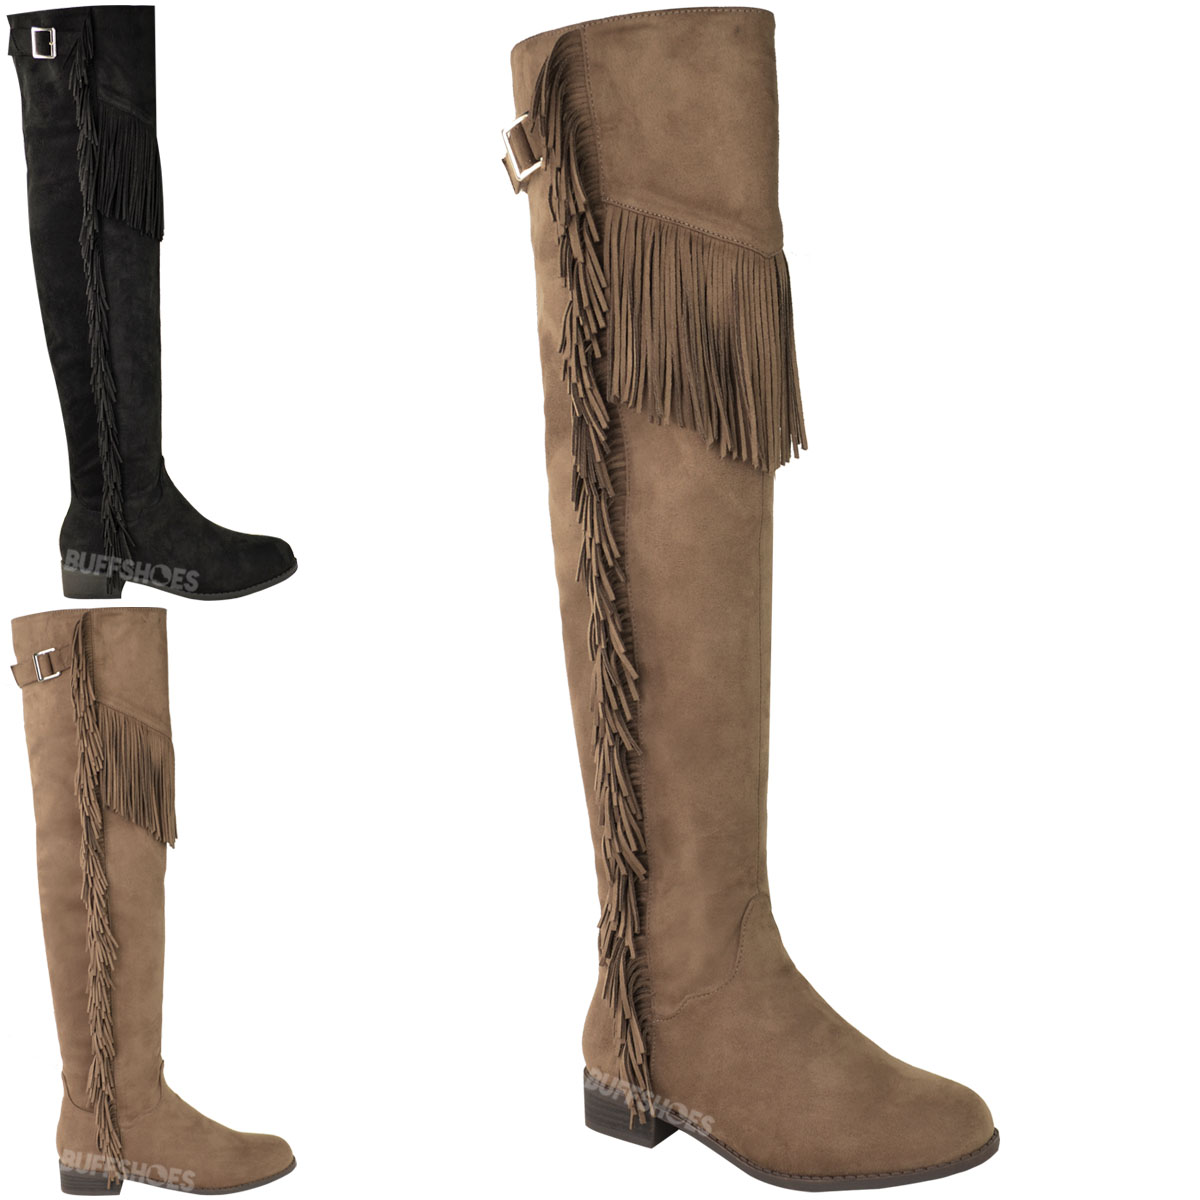 WOMENS LADIES OVER THE KNEE THIGH HIGH RIDING BOOTS FLAT TASSEL